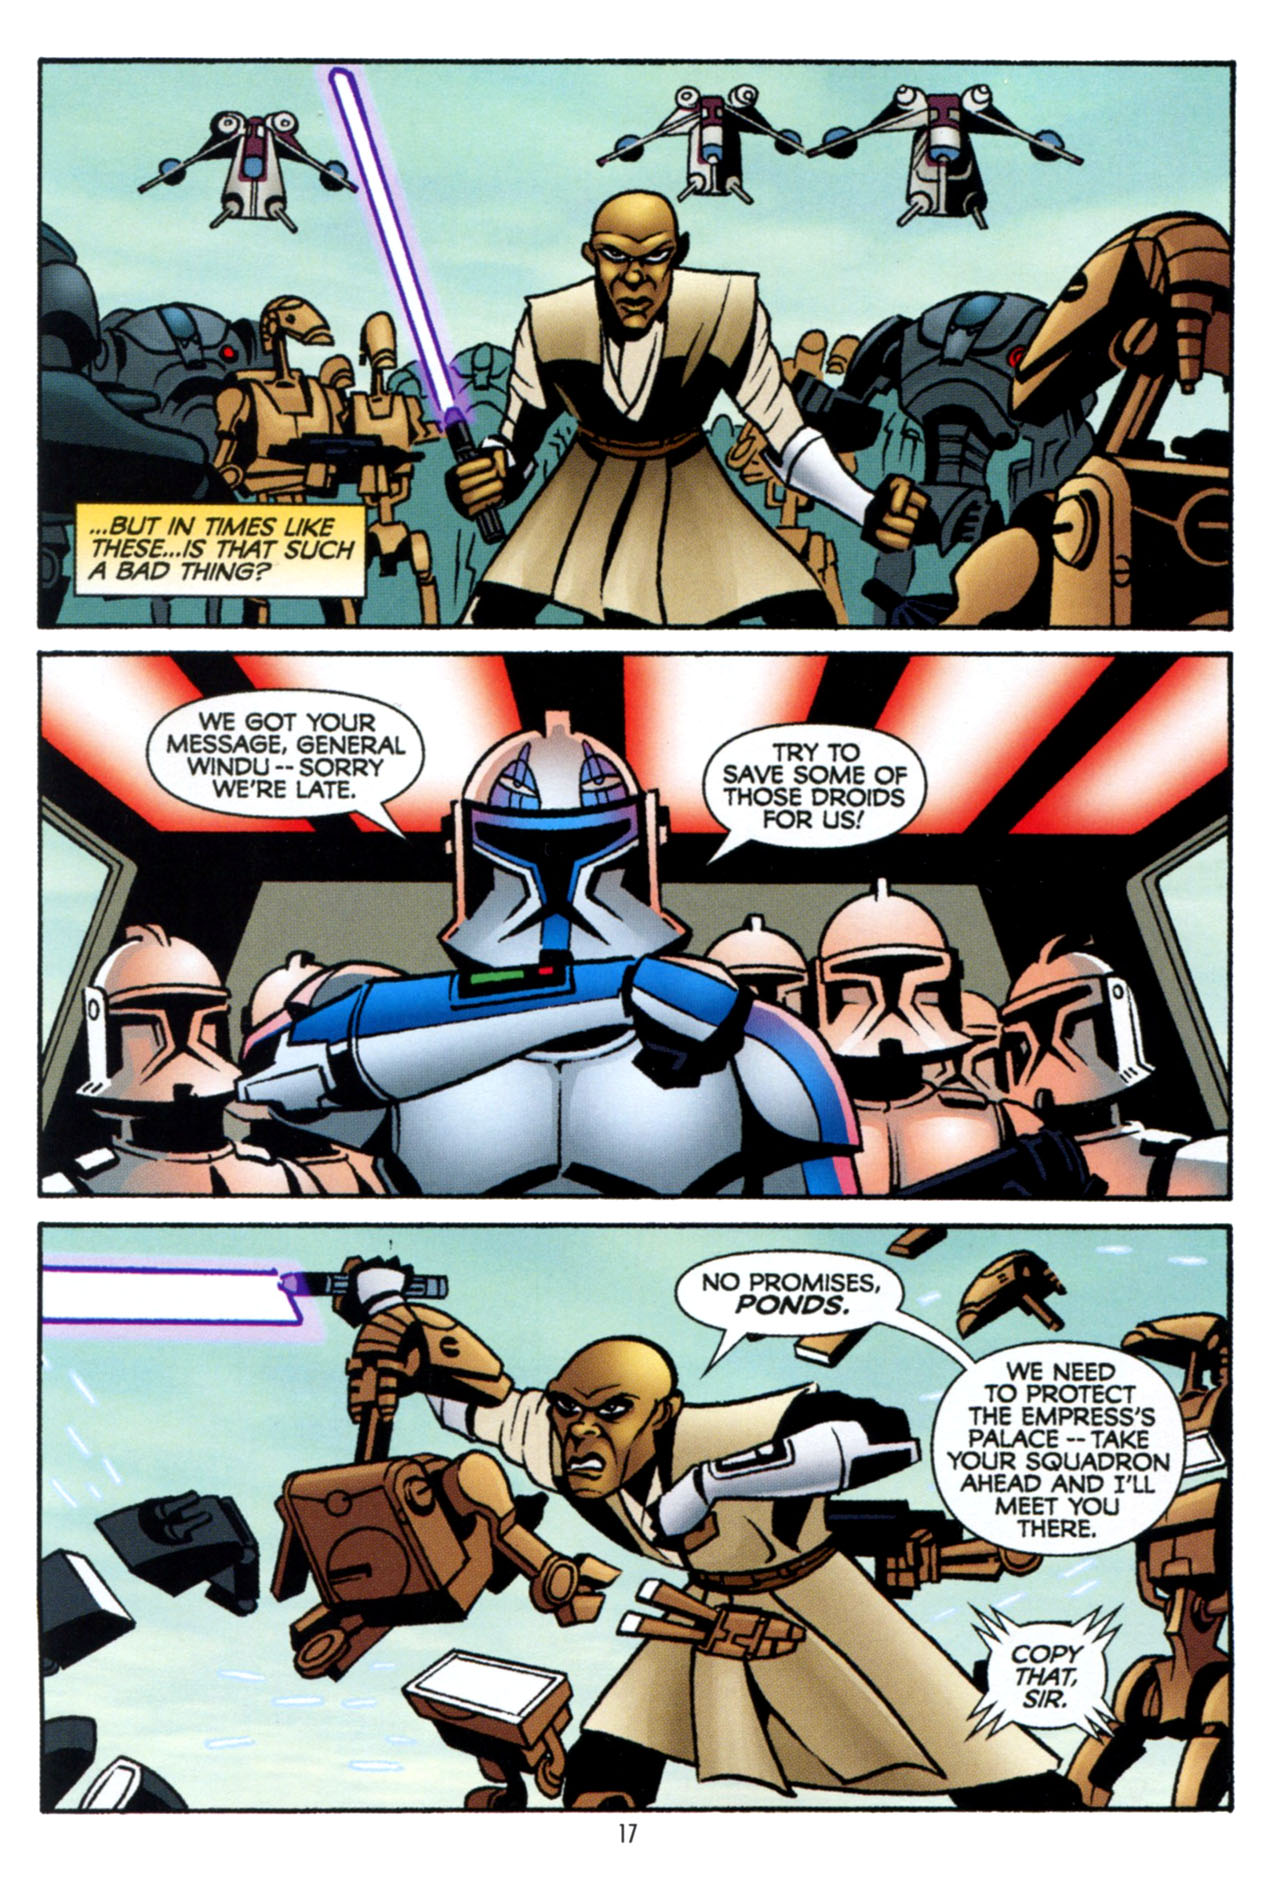 Read online Star Wars: The Clone Wars - The Colossus of Destiny comic -  Issue # Full - 18